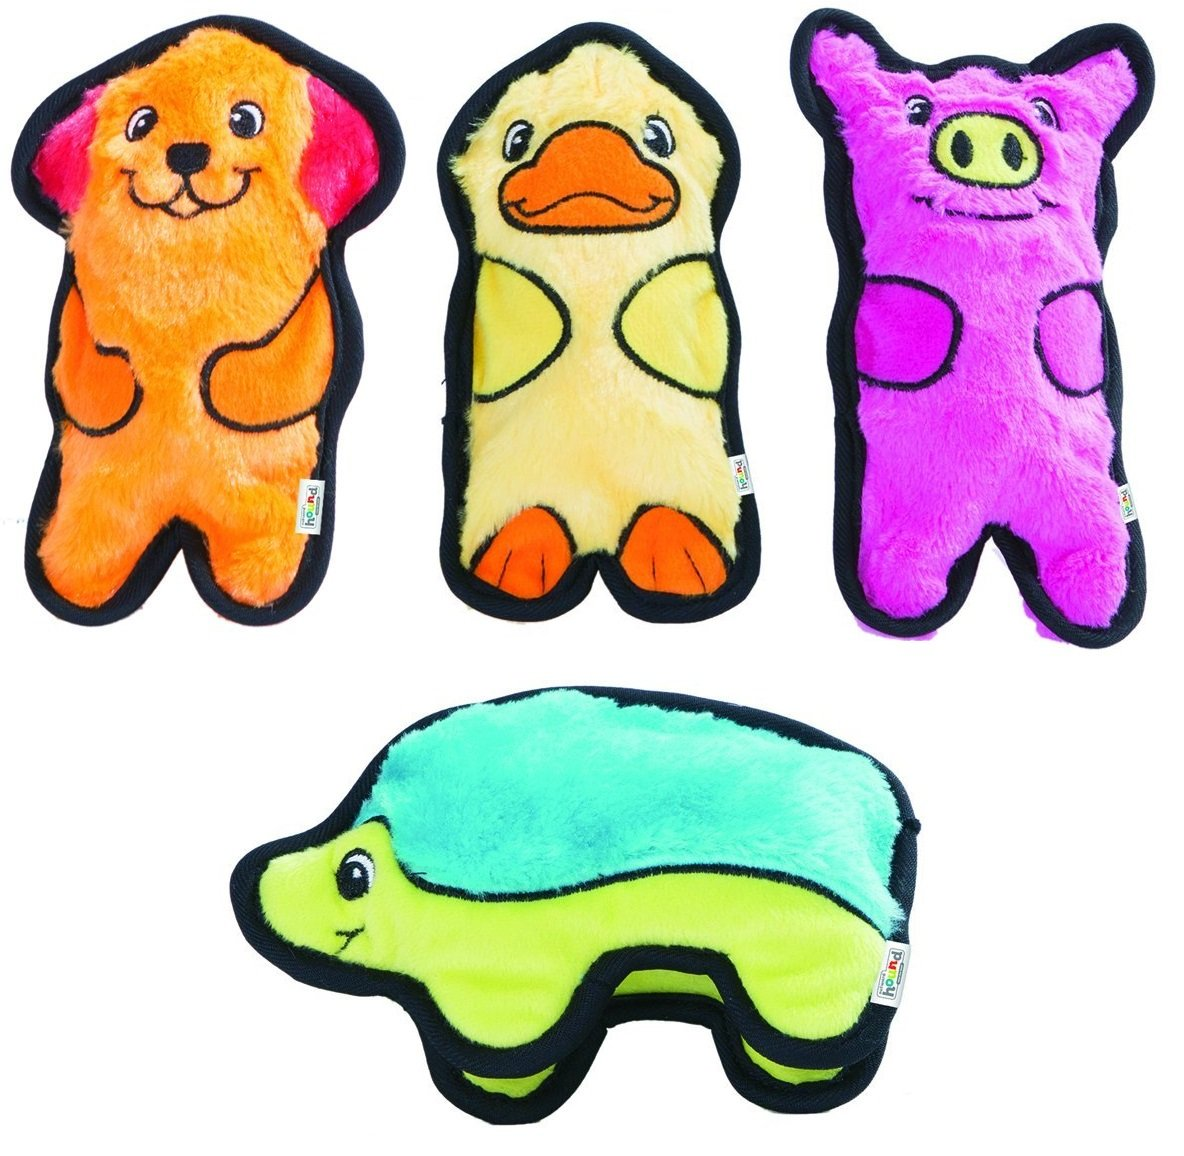 Outward Hound Invincibles Plush Stuffing-Less Dog Toys with Squeaker